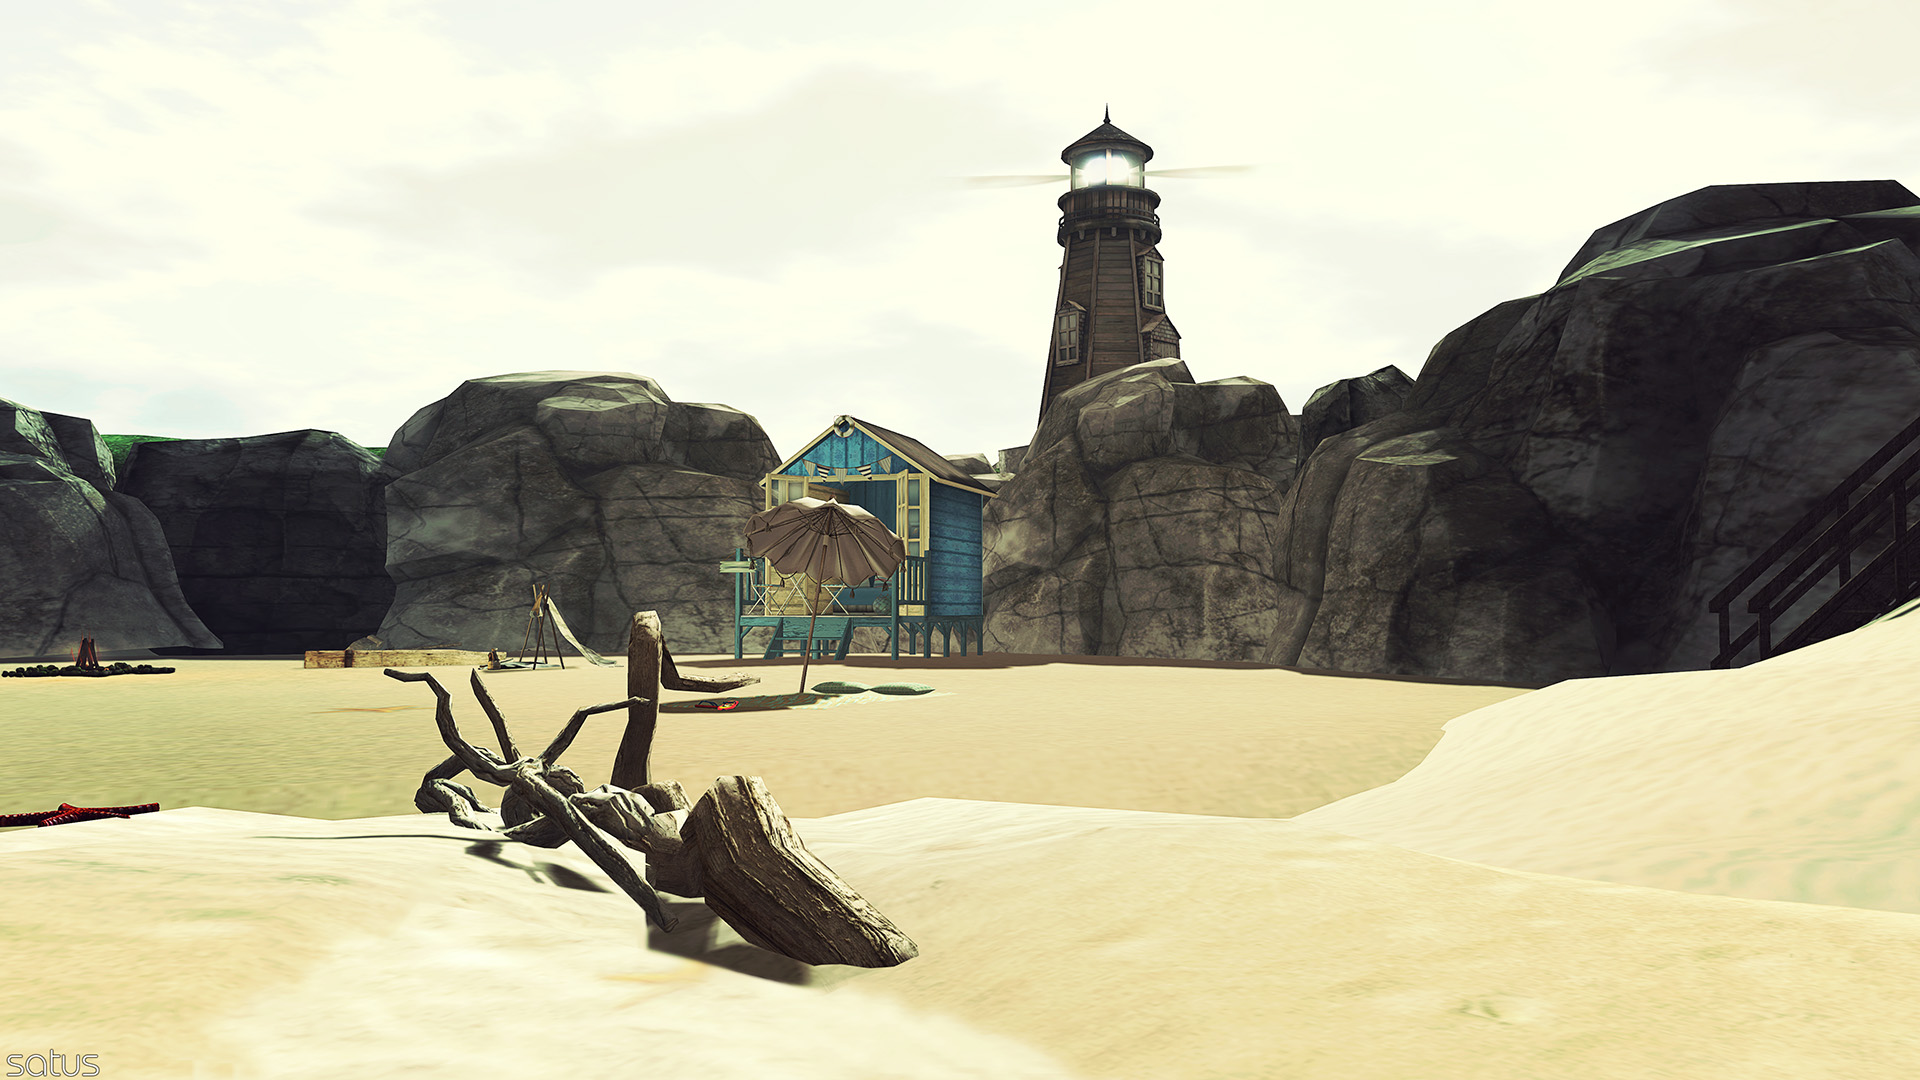 SL Travel: A Room With a View